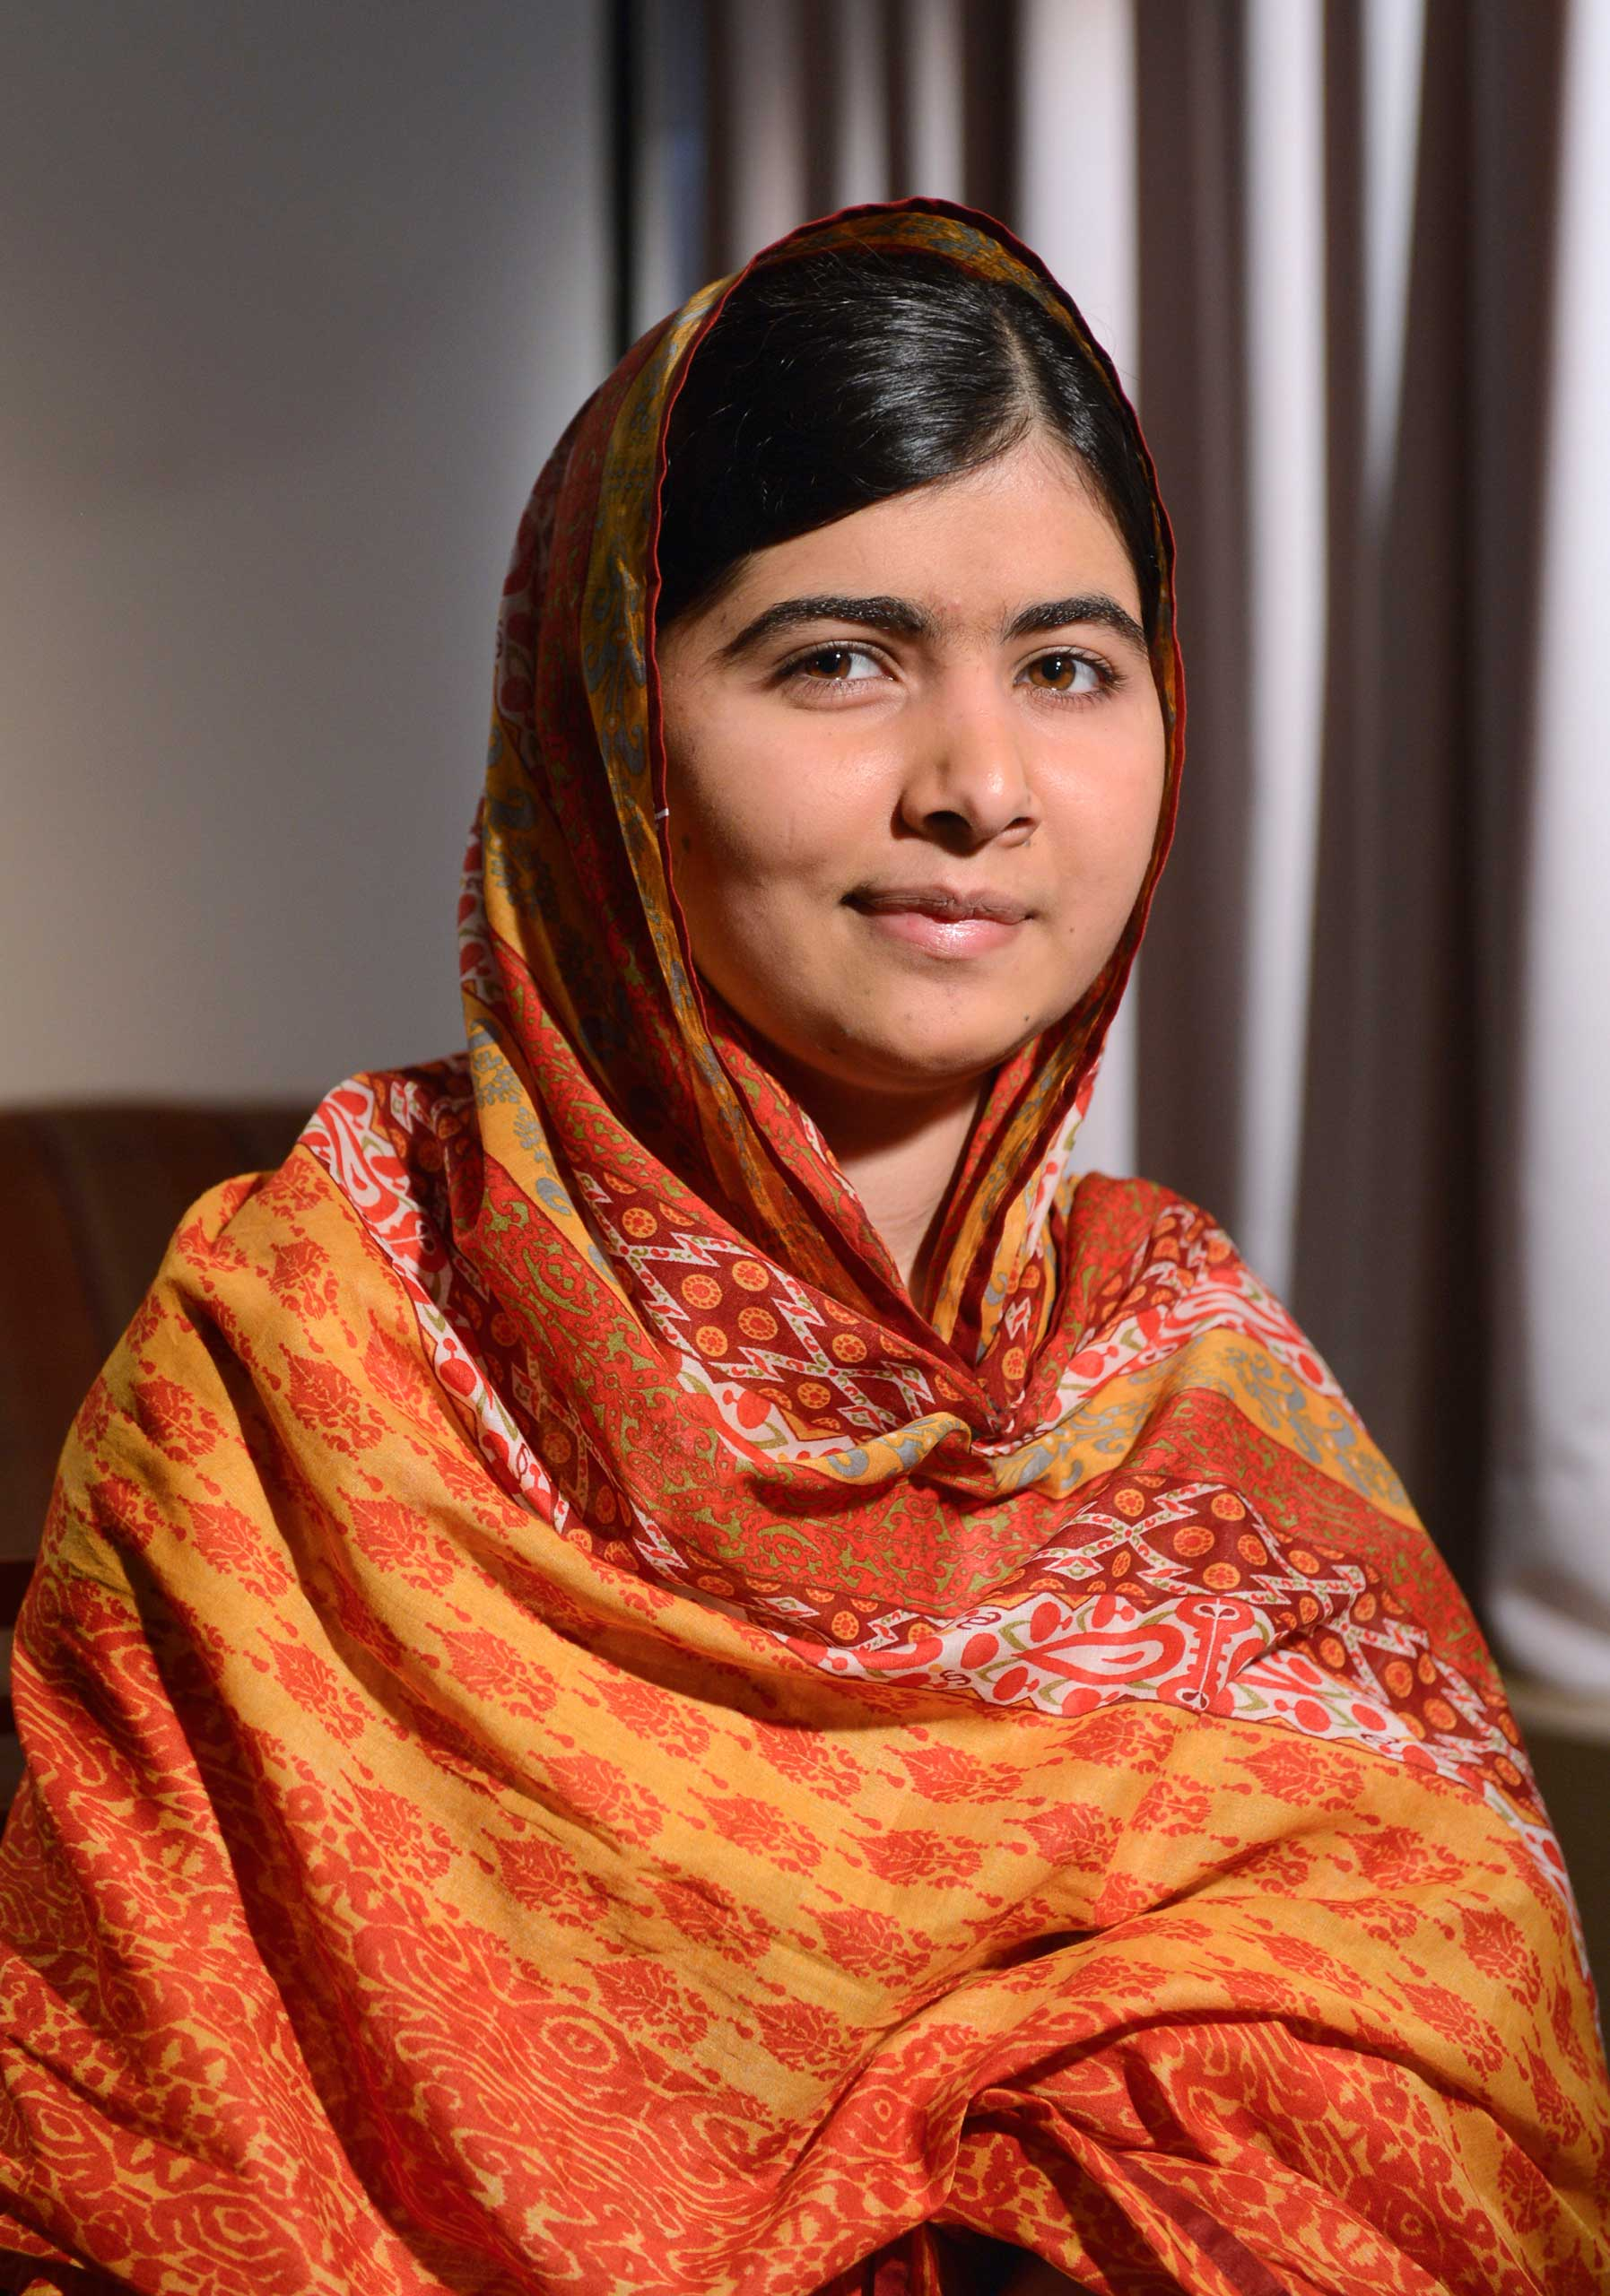 Pakistinian teenager and education activist Malala Yousafzai is interviewed on GOOD MORNING AMERICA, airing MONDAY, AUG. 18 (7:00-9:00am, ET) on the ABC Television Network. (Photo by Ida Mae Astute/ABC via Getty Images) MALALA YOUSAFZAI